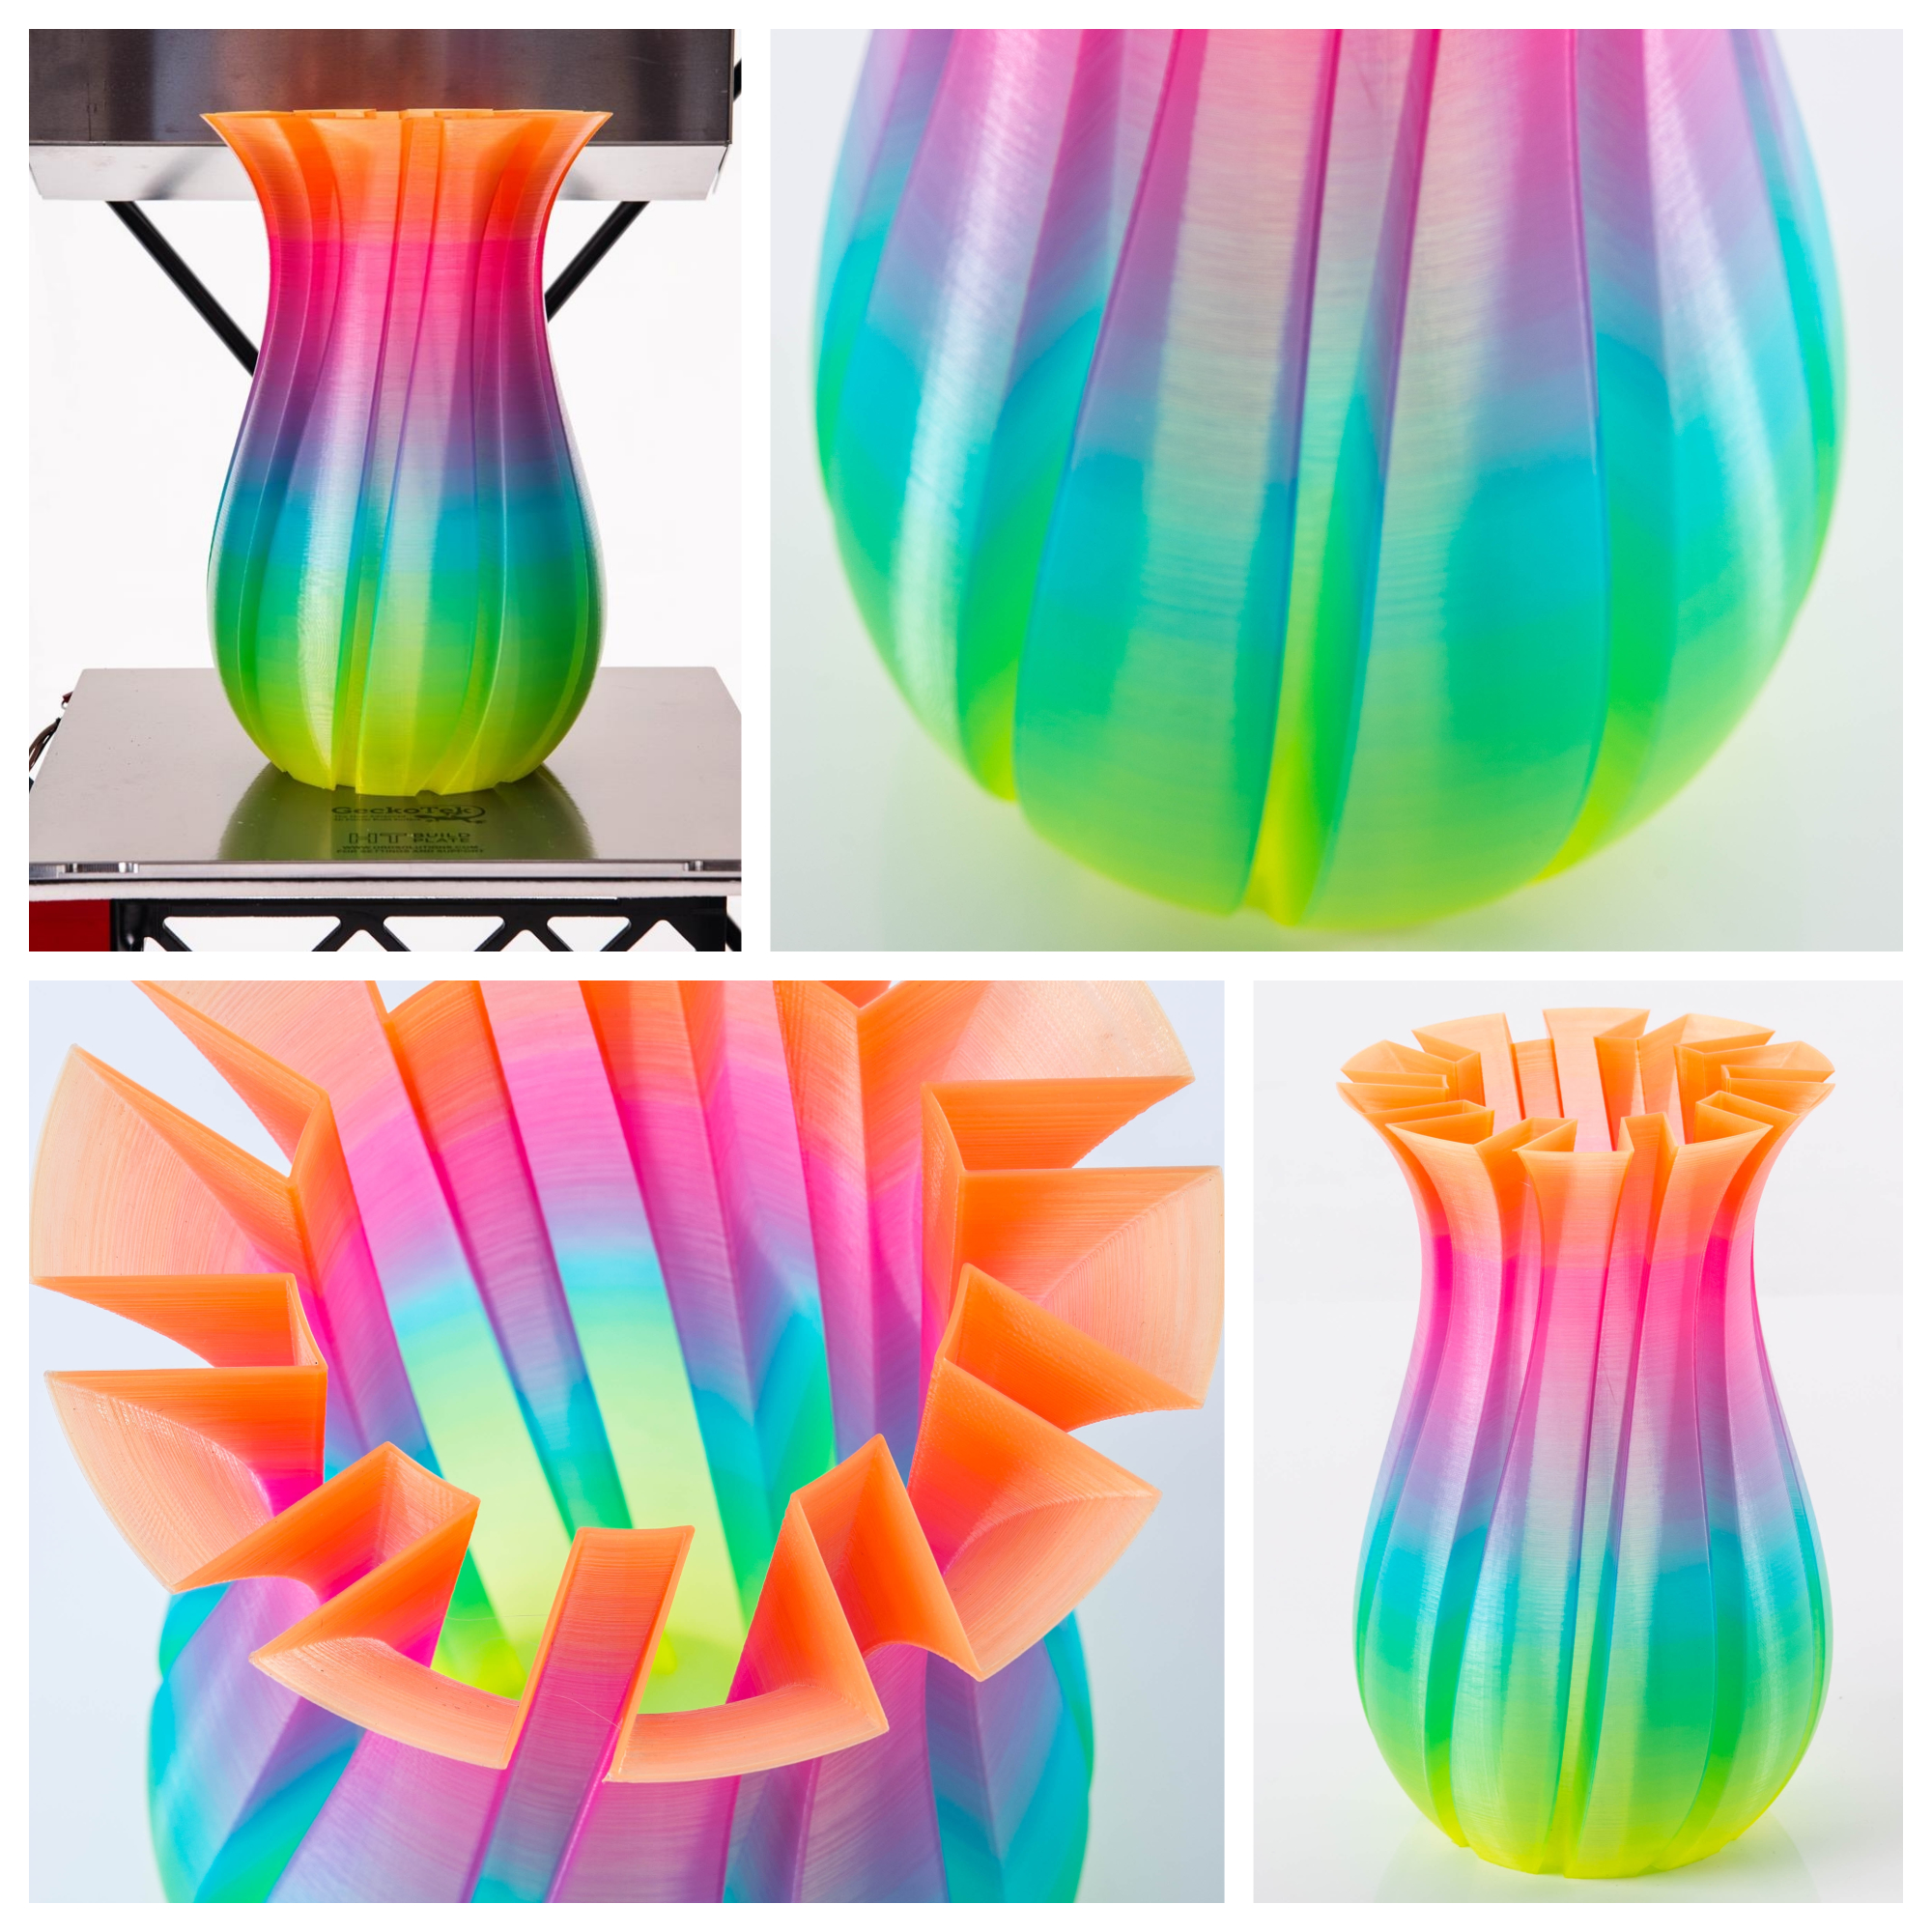 How Close Are We to Full Color 3D Printing?